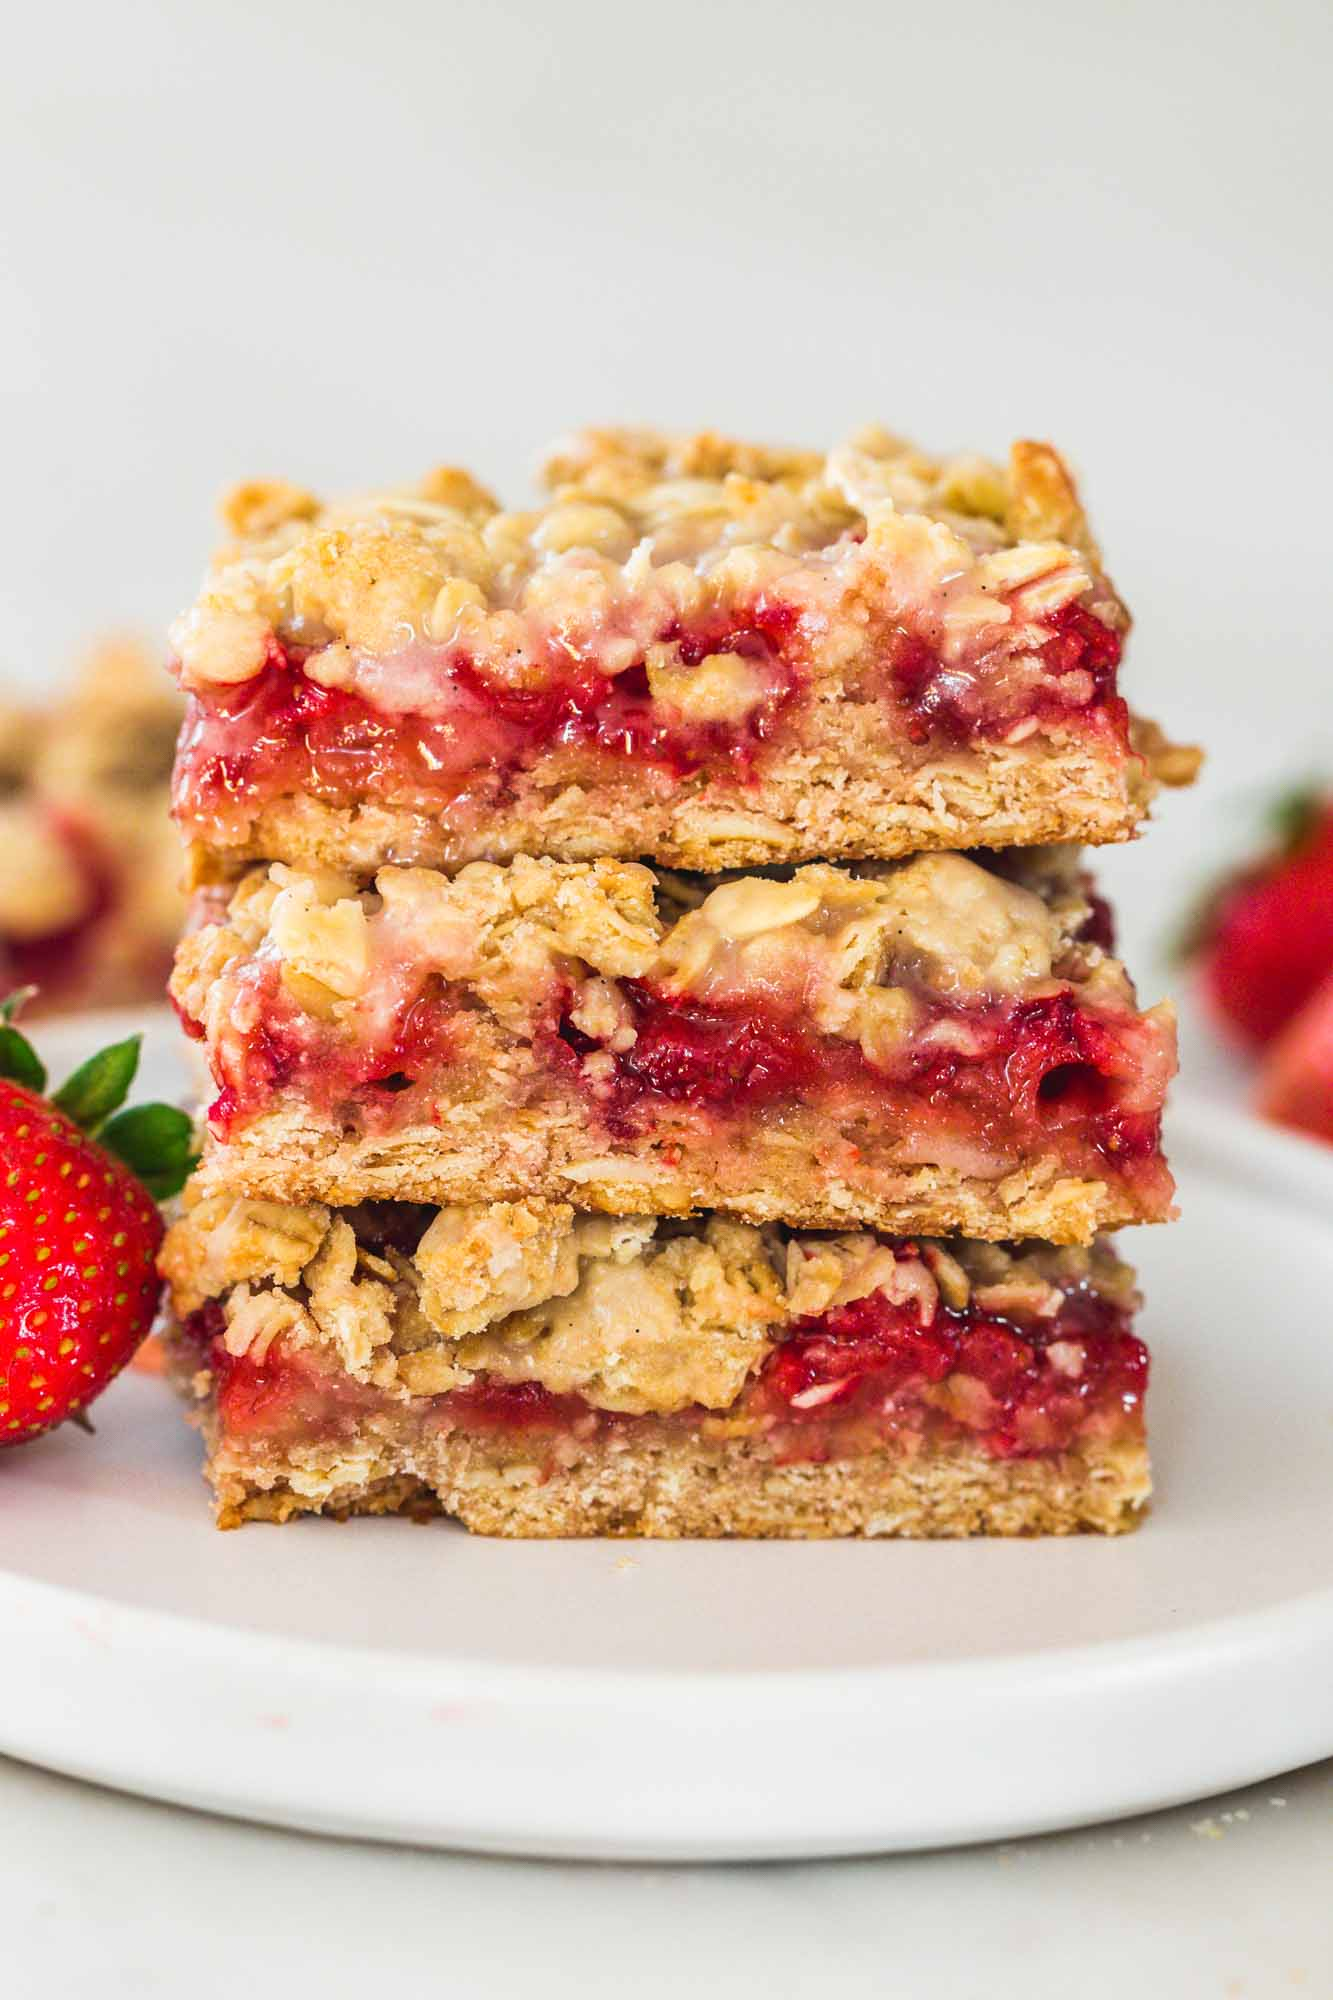 Strawberry Oatmeal Bars stacked on each other